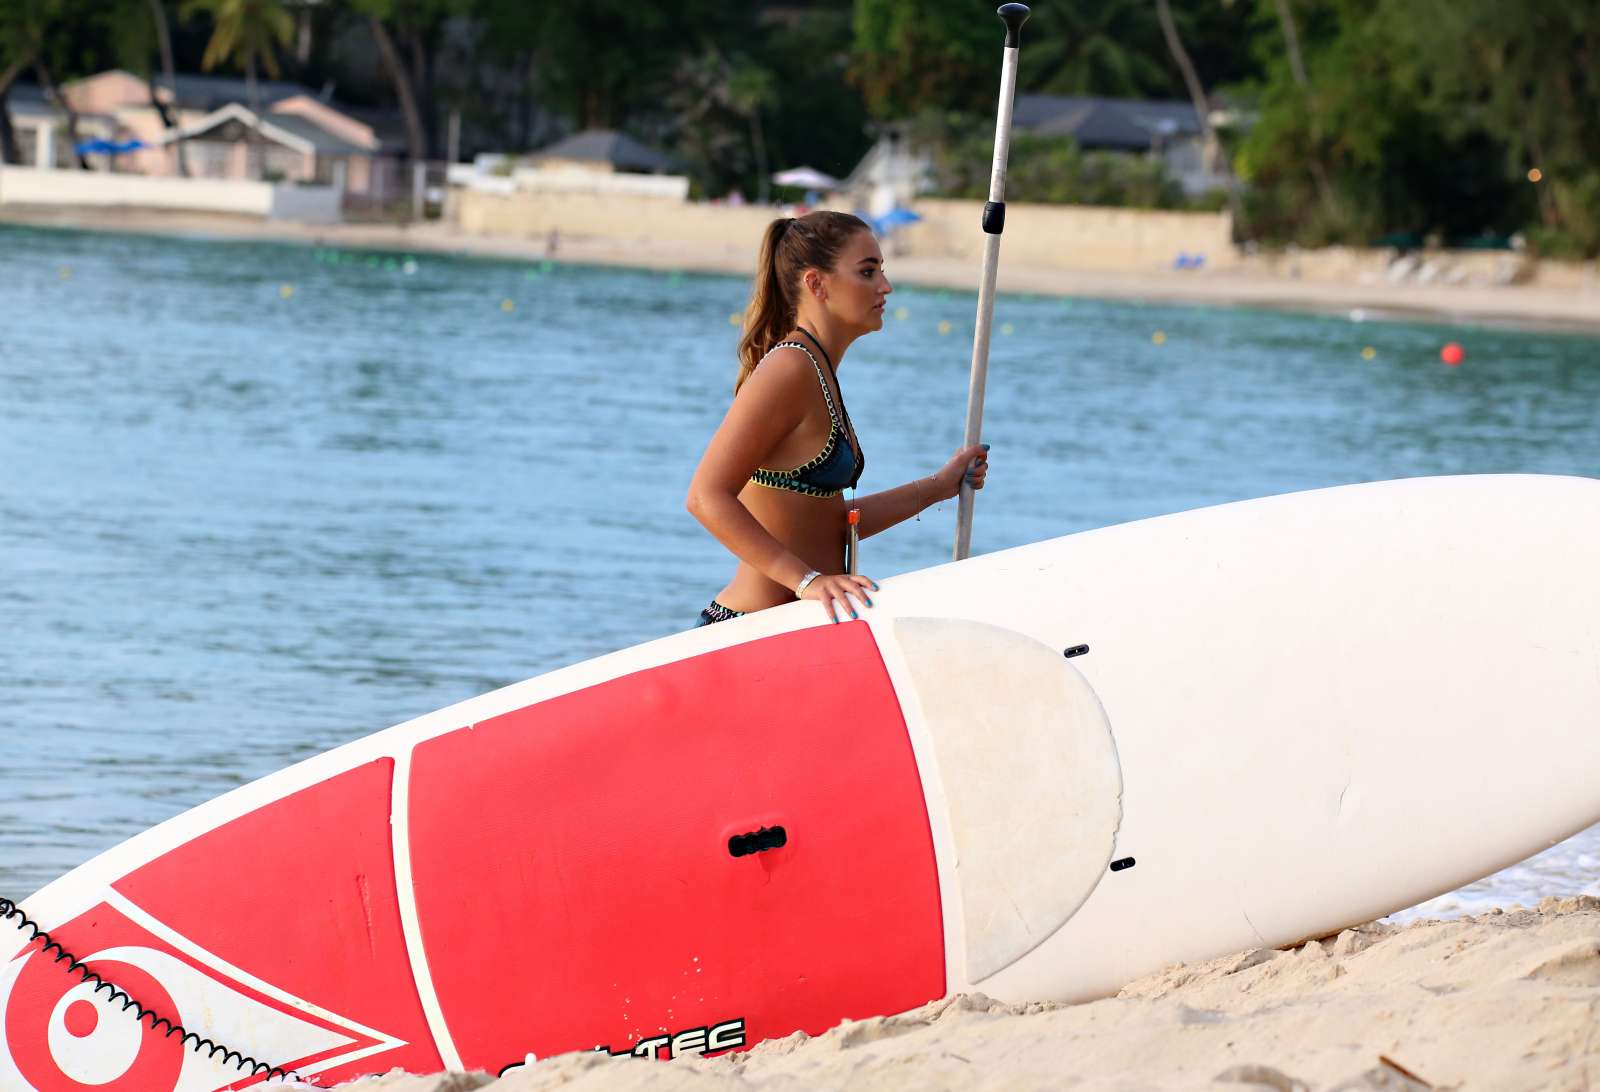 Georgina Leigh Cantwell in Bikini Paddleboarding in Barbados Pic 7 of 35